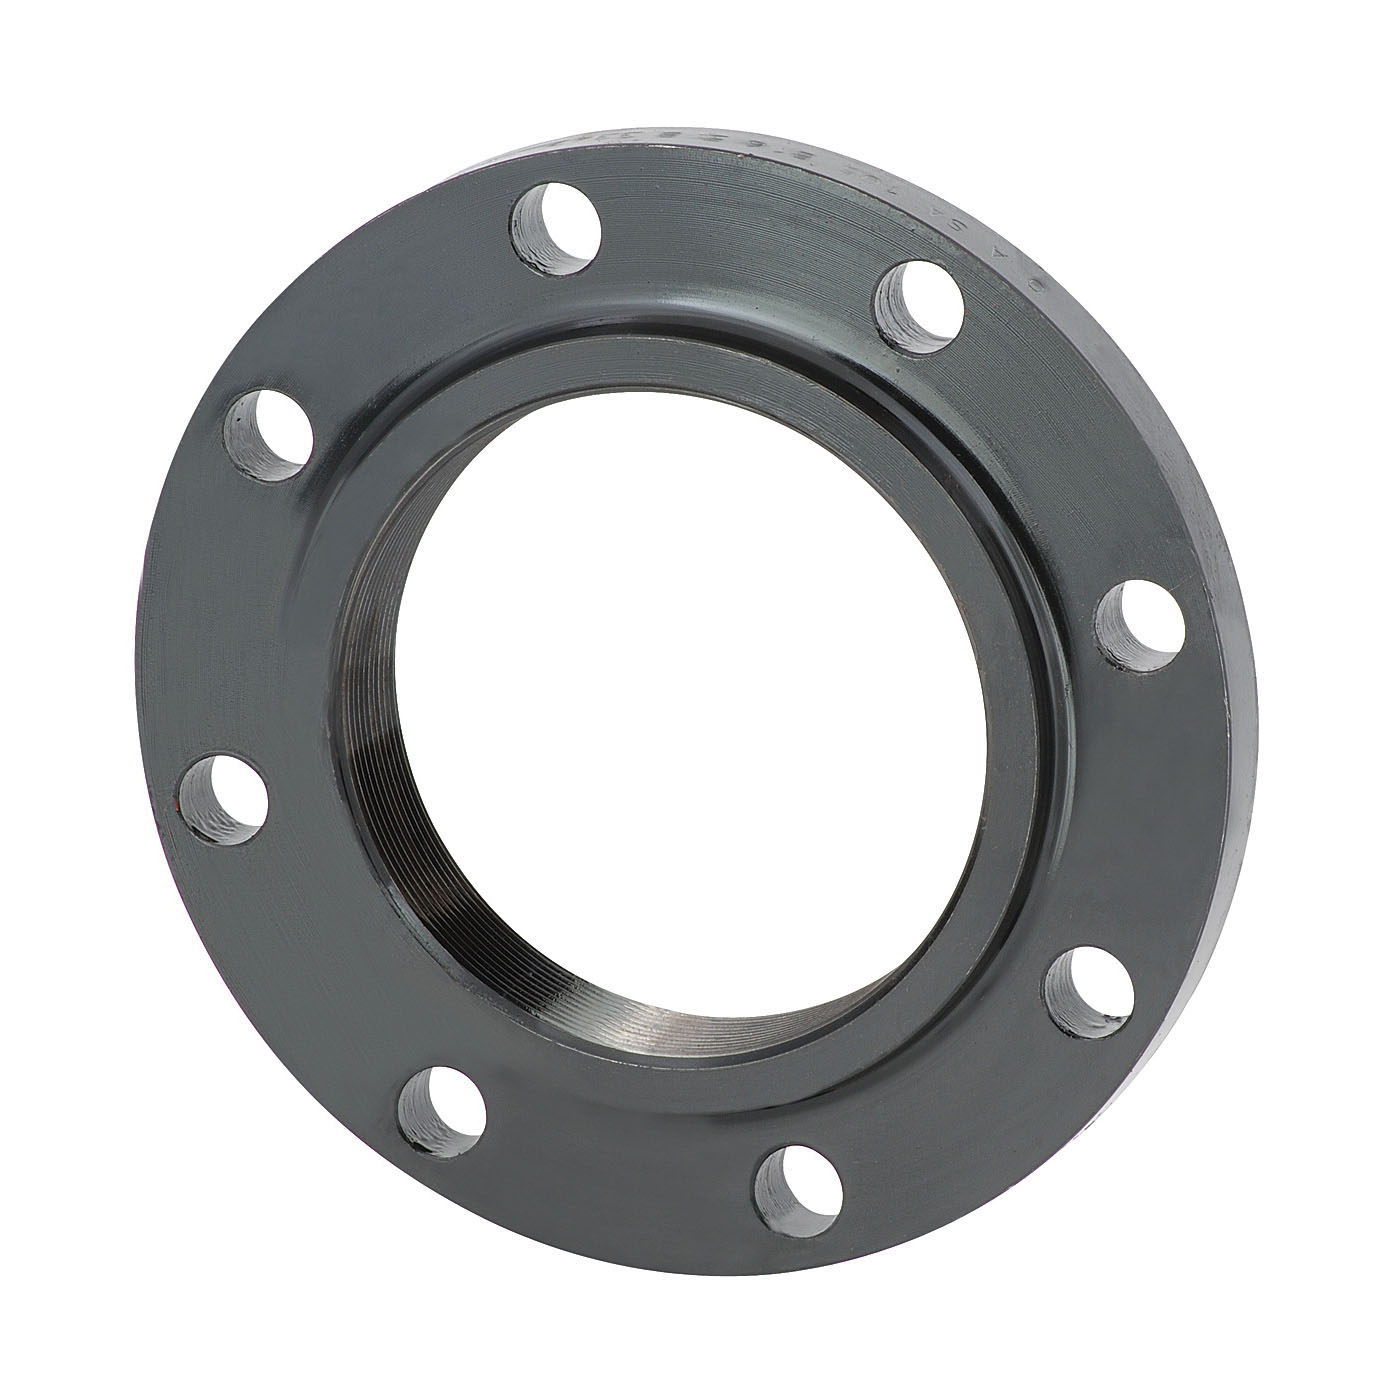 Matco-Norca™ MN150TF09 Raised Face Weld Flange, 2-1/2 in Nominal, Carbon Steel, Threaded Connection, 150 lb, Domestic